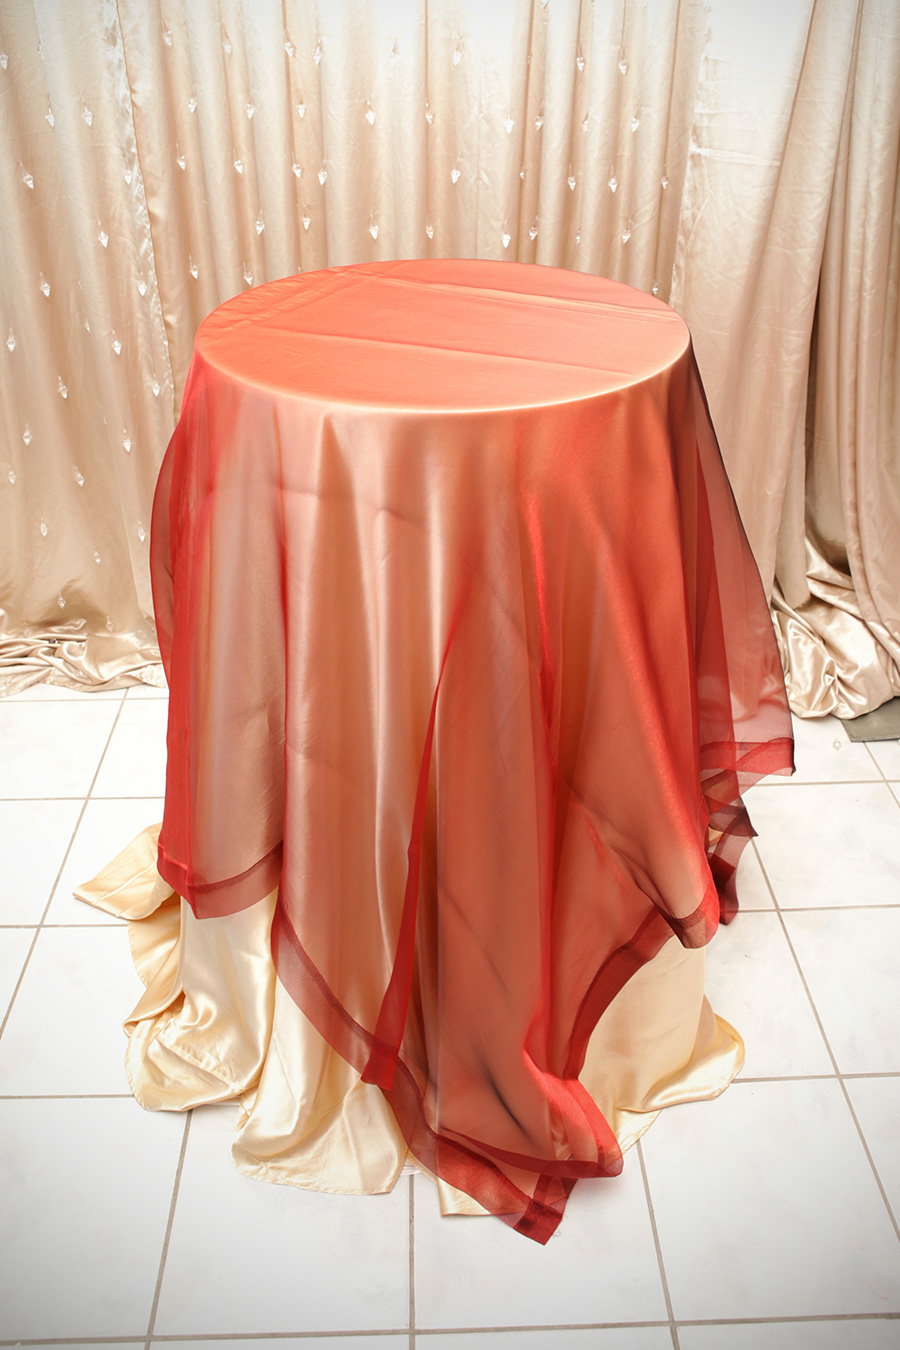 Sheer Overlay Table Cover Red